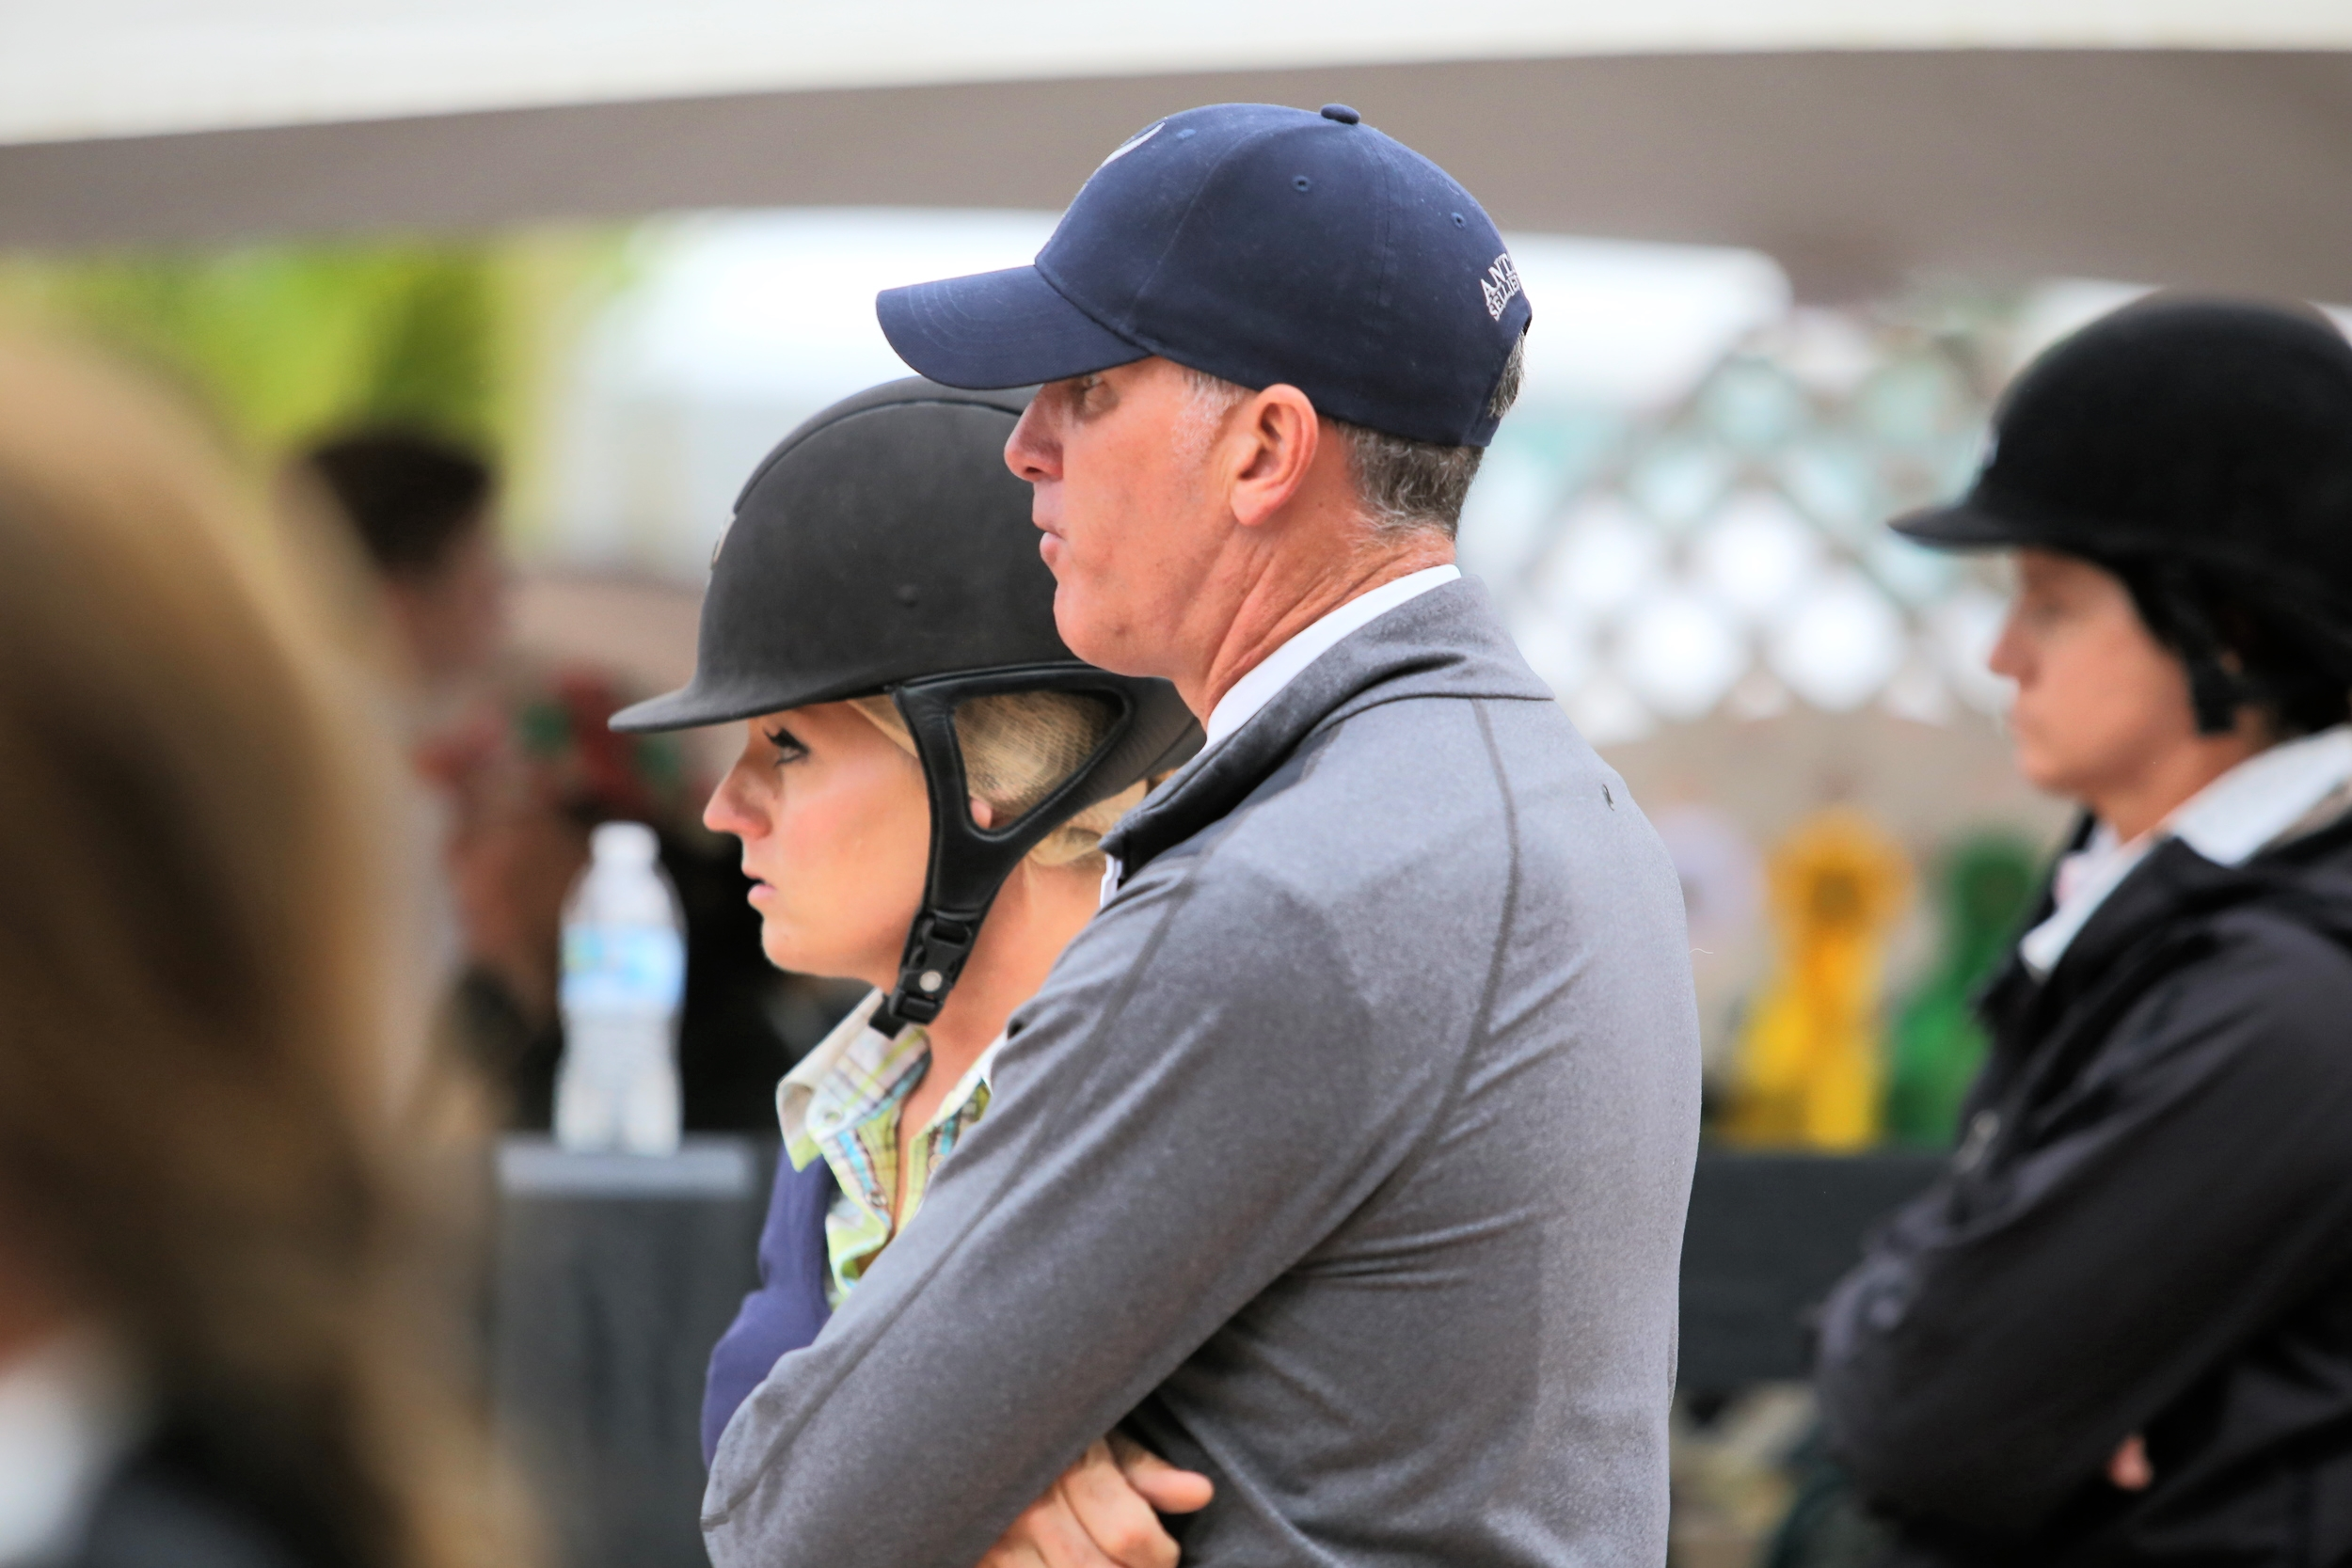 Freddie and Jodi Vazquez watch their student's round at the Winter Equestrian Festival. Photo by Carrie Wirth